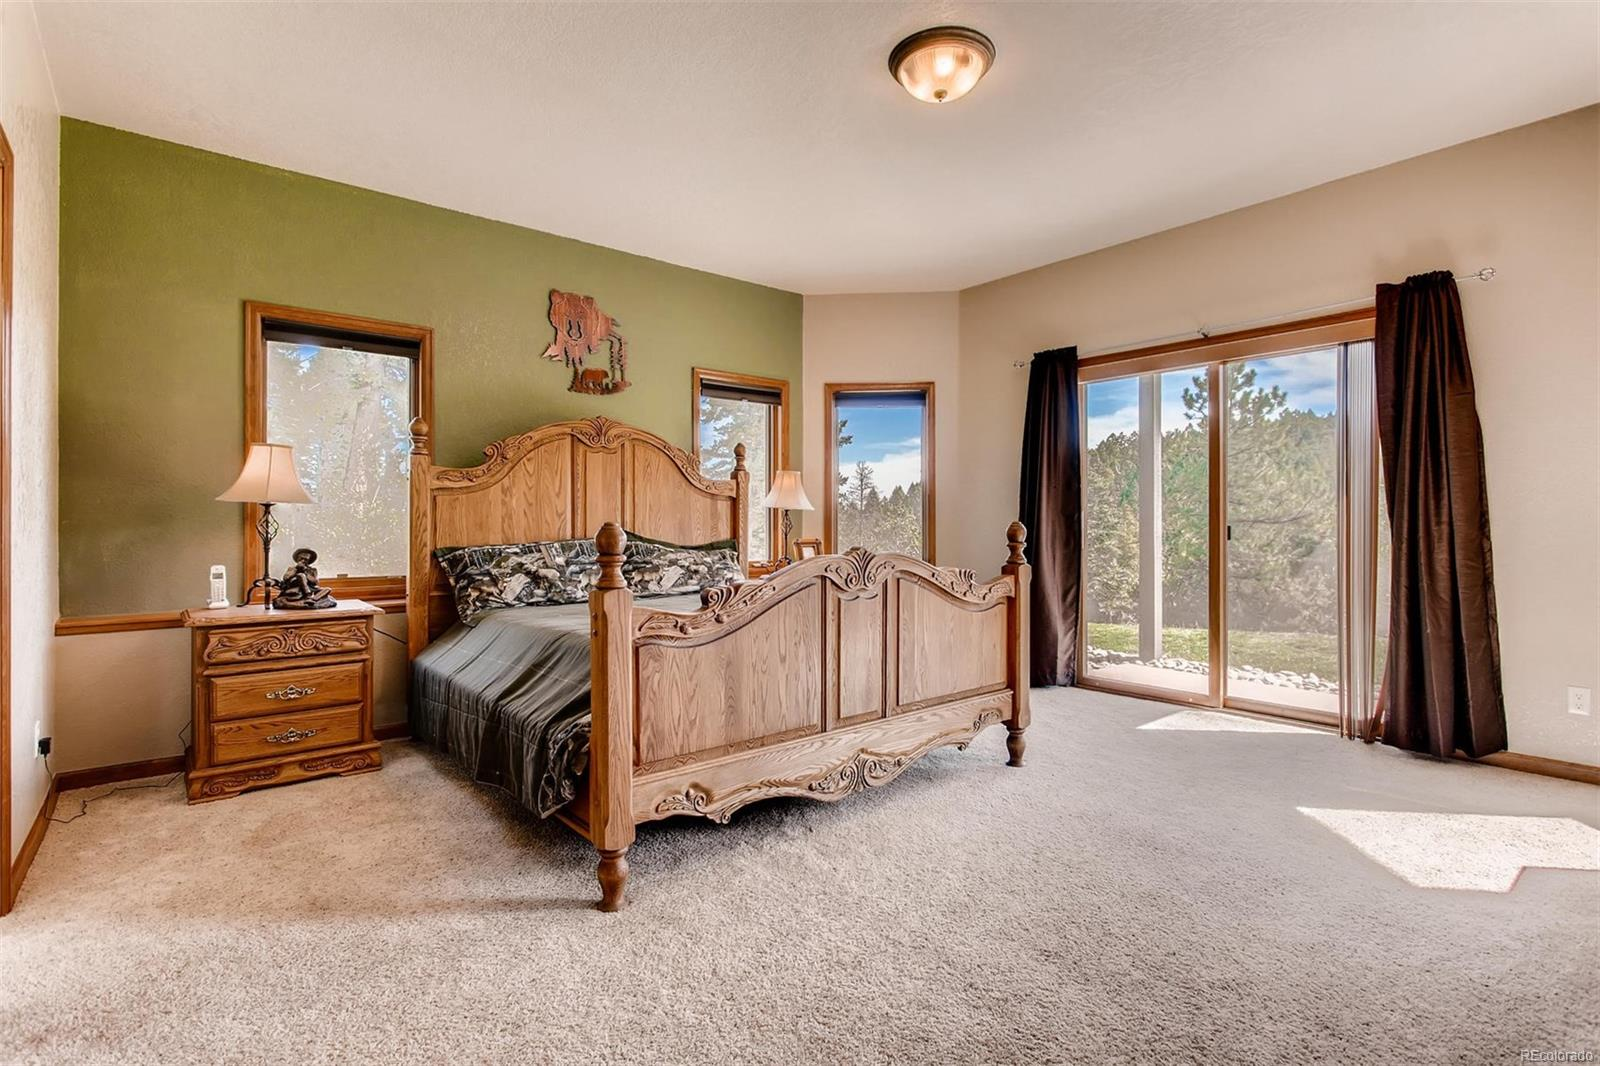 This large bedroom has access to one of the patios. The very large closet and ja